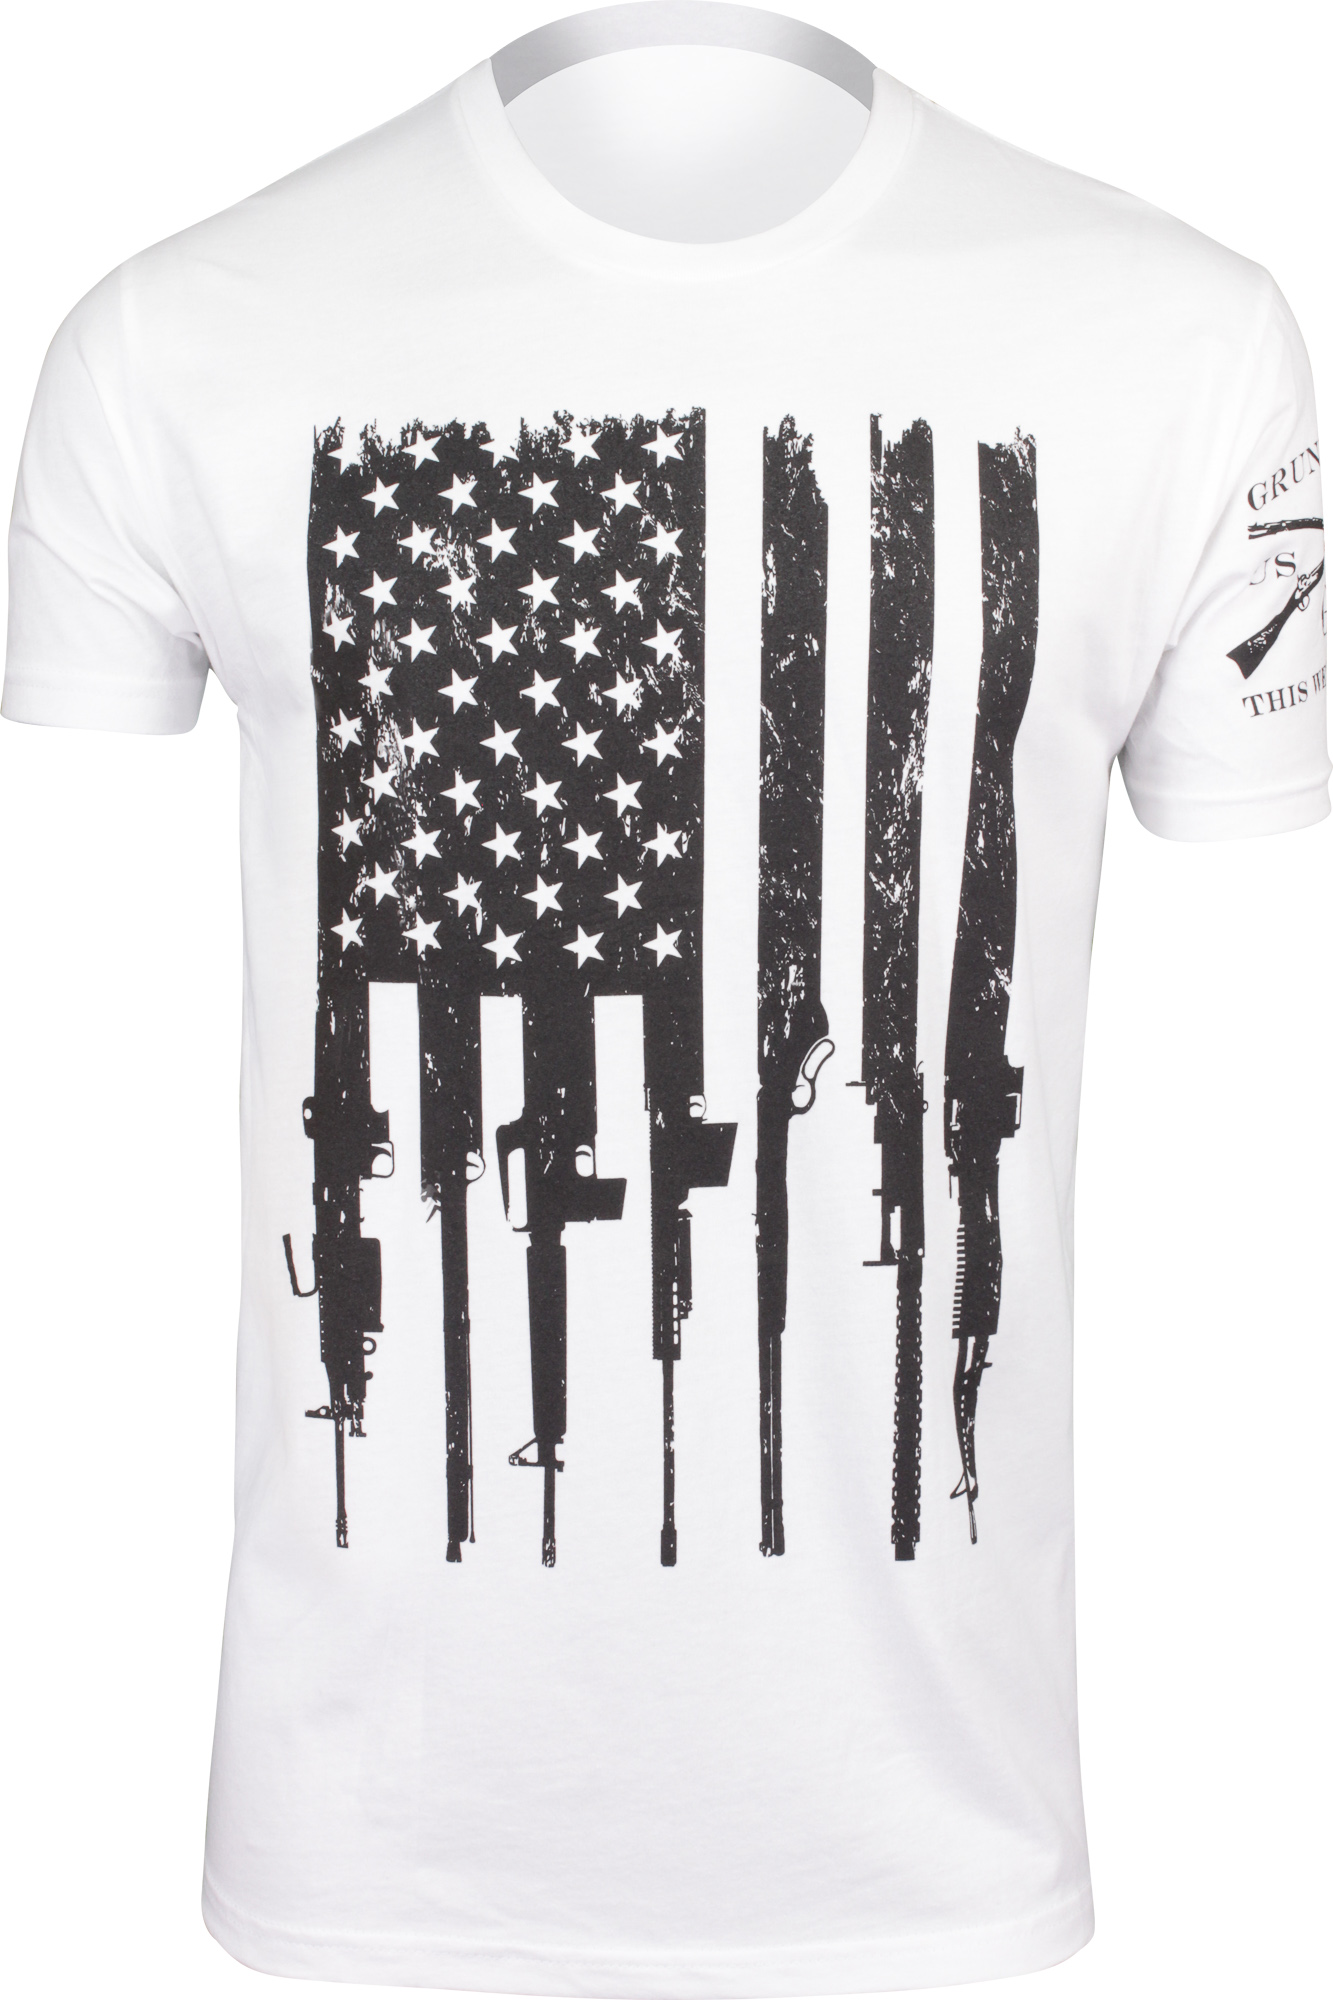 3001-Black-XL OpticsPlanet Exclusive Grunt Style American Flag T-Shirt Mens